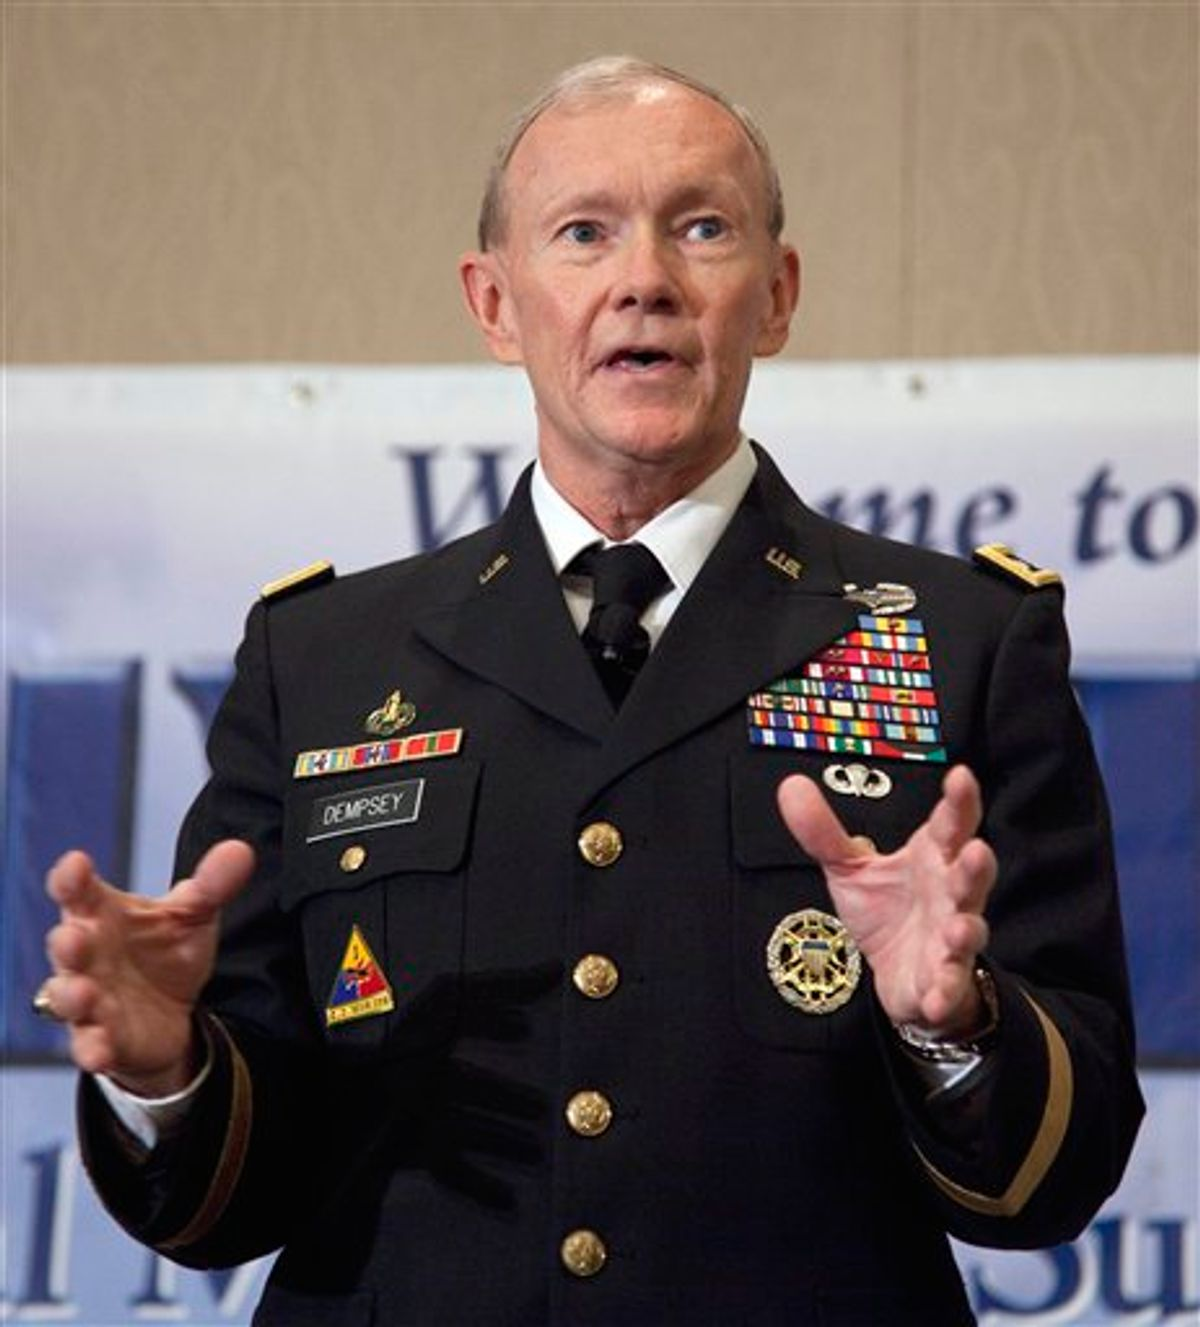 Army Chief of Staff Gen. Martin Dempsey speaks to family members of fallen service members at a Tragedy Assistance Program for Survivors seminar, Friday, May 27, 2011, in Arlington, Va.  (AP Photo/Evan Vucci) (AP)